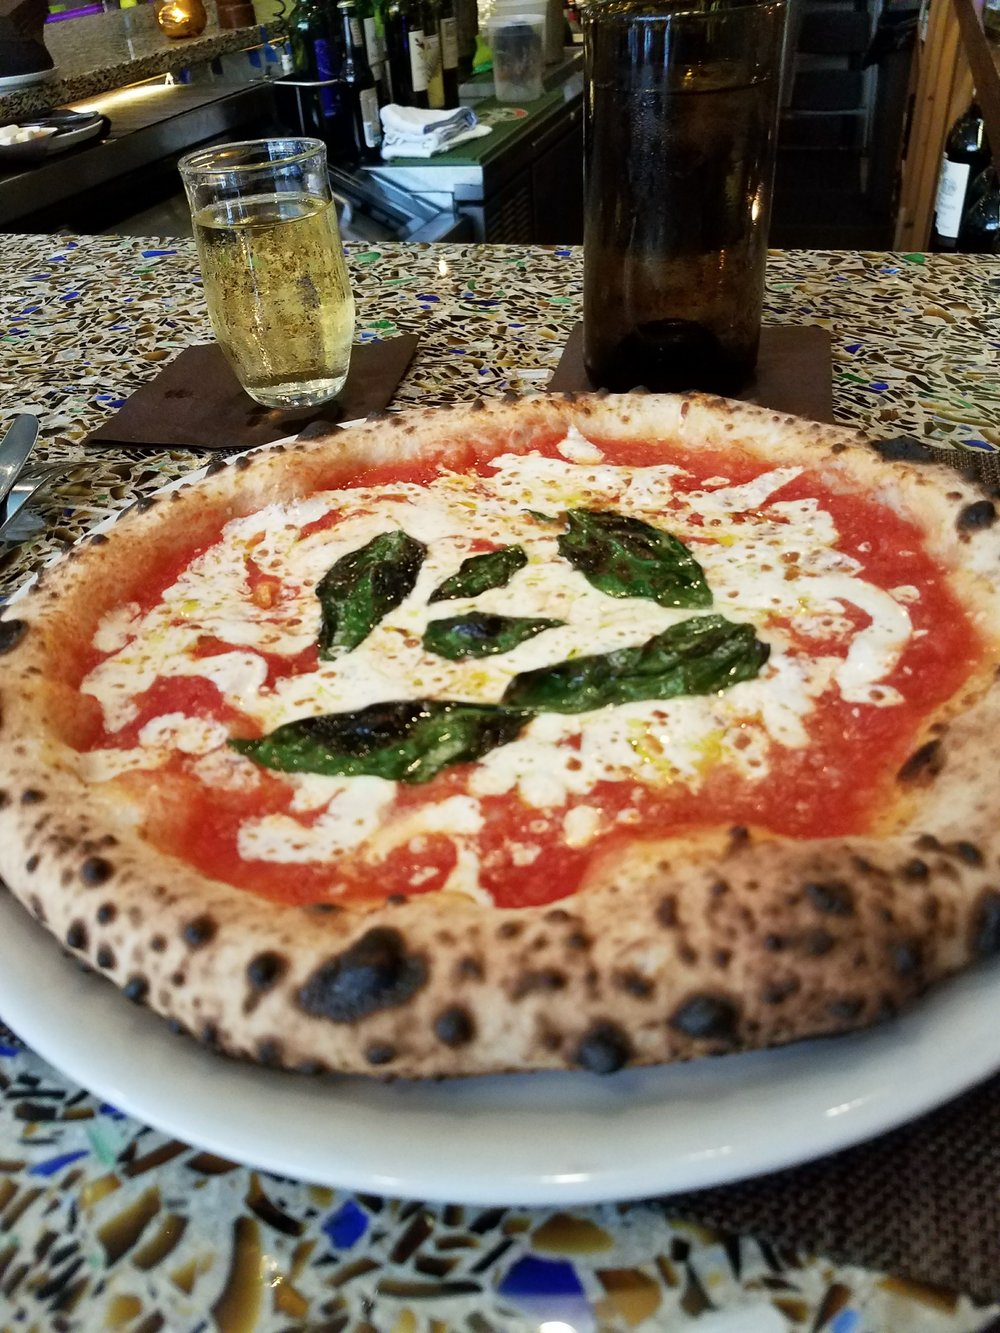 Side note: I had the perfect Saturday afternoon at this pizza place, eating the freshest and best pizza I've had since Italy, drinking too much wine and chatting with the bartender about the merits of the  Handmaid's Tale  novel versus the book.